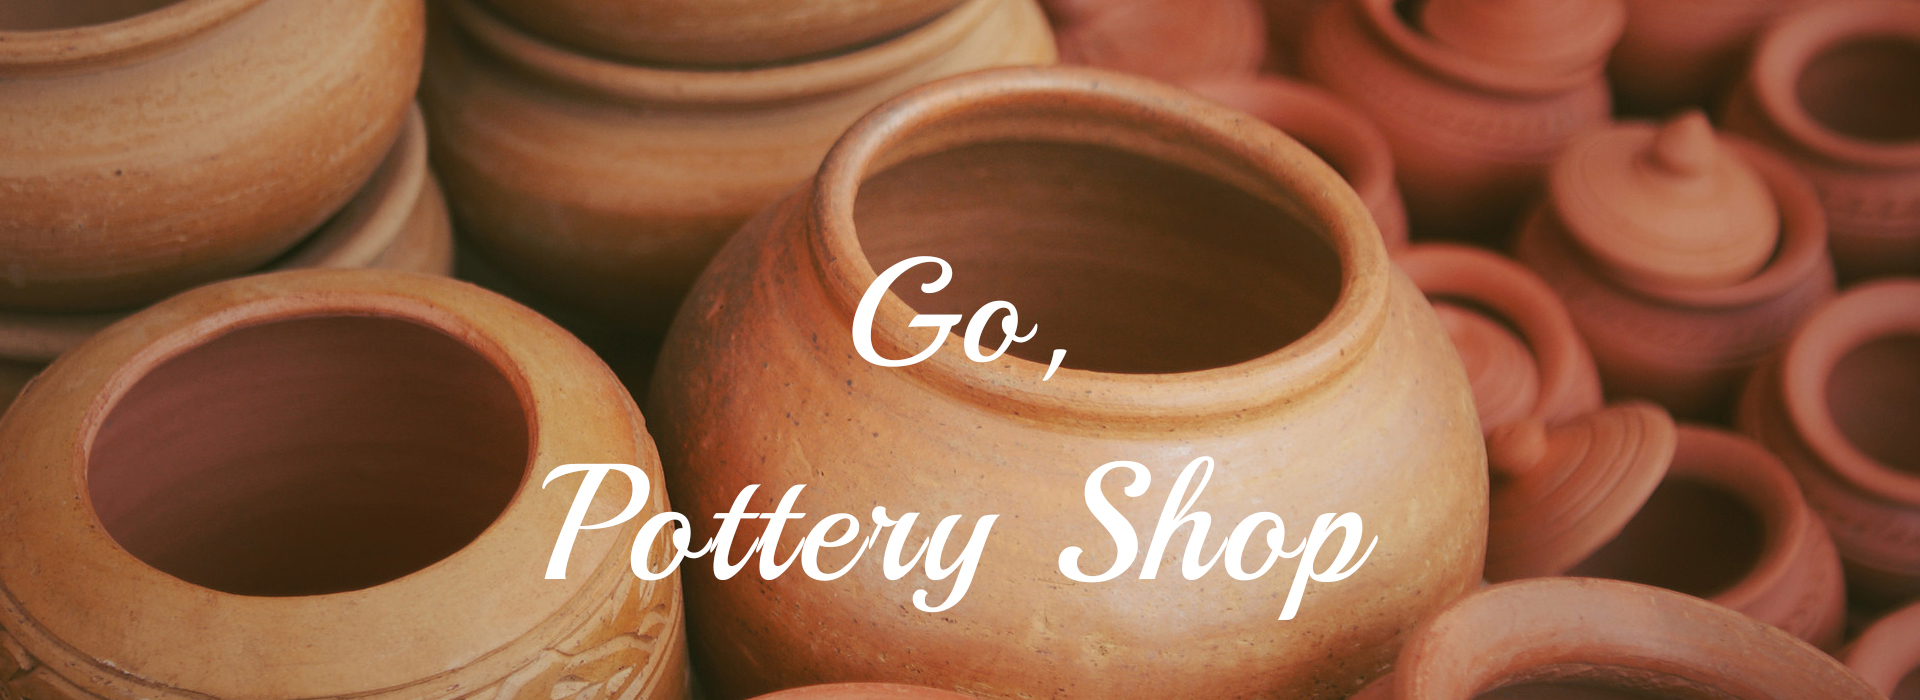 Space Pottery